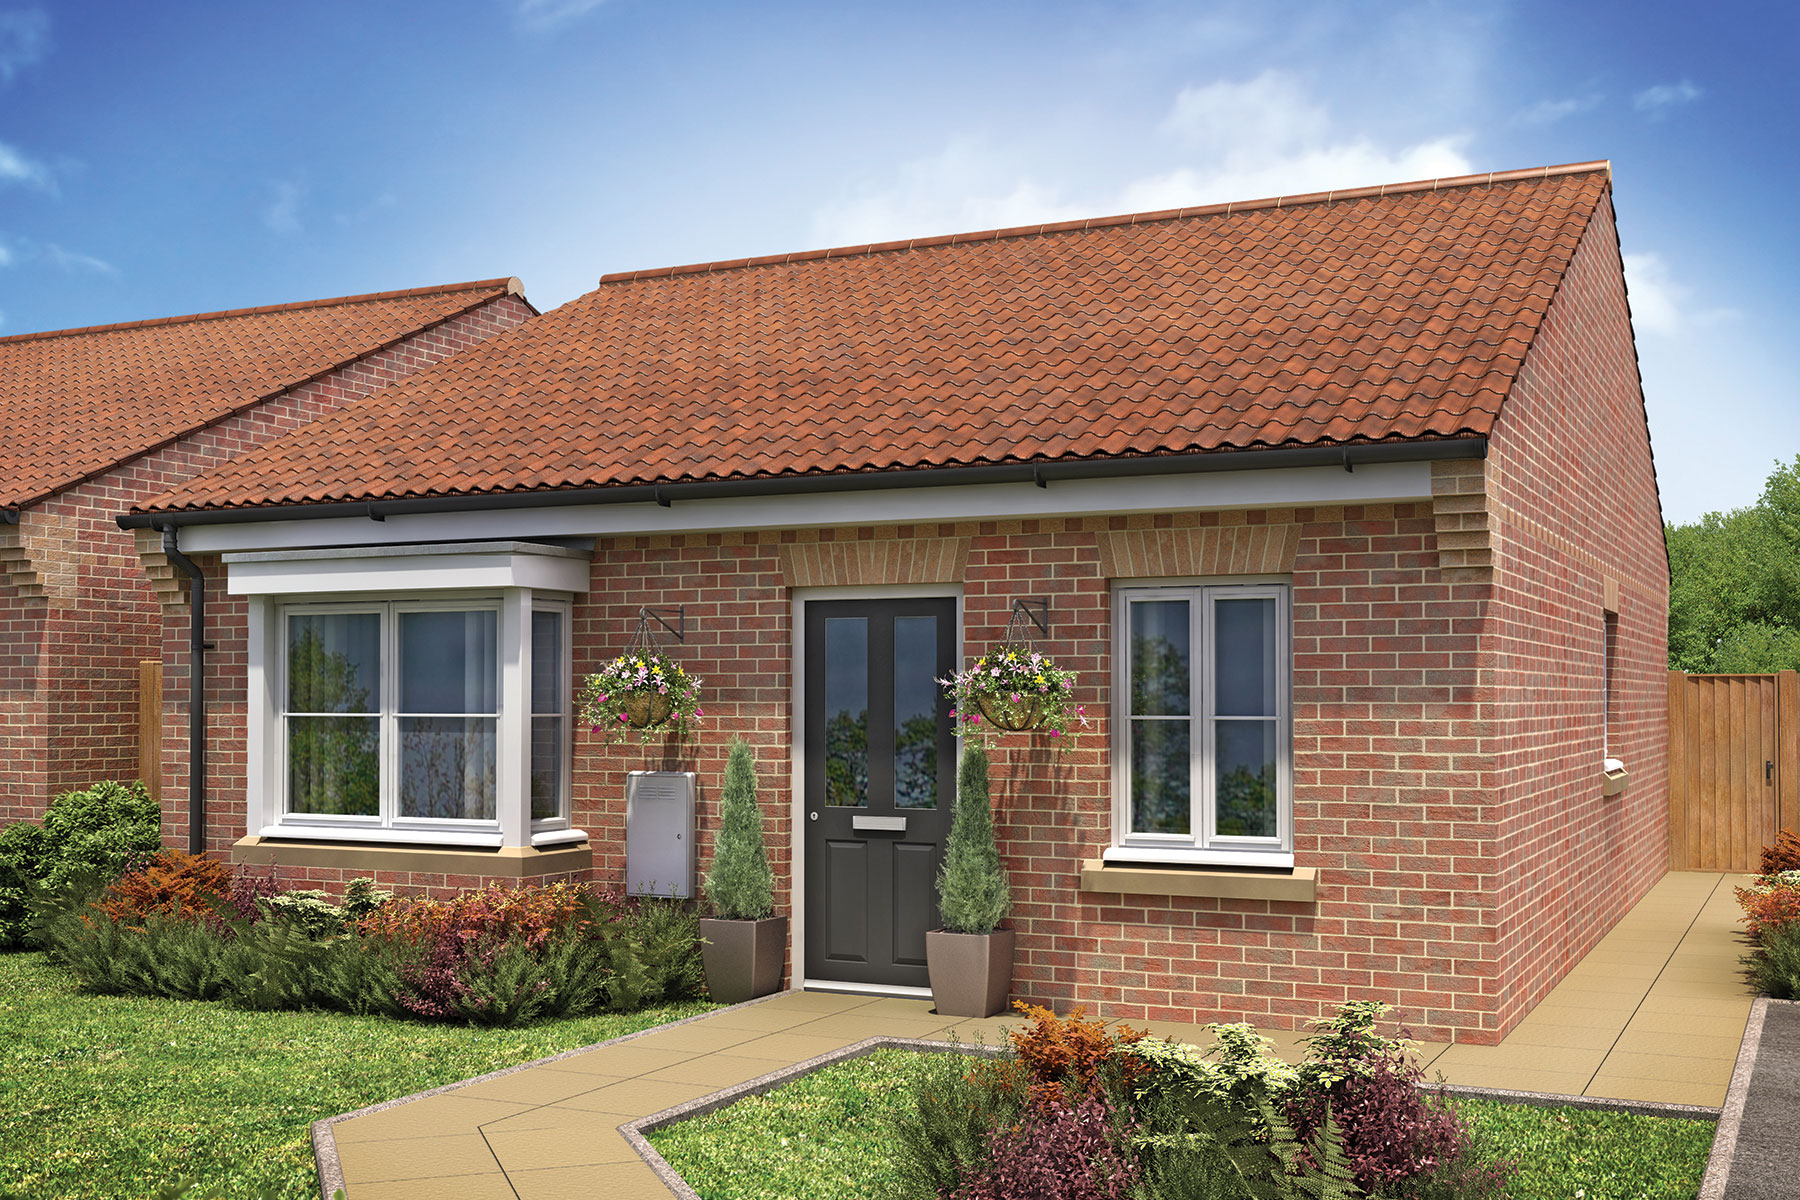 Hollywell-722-Bungalow-Plot-287